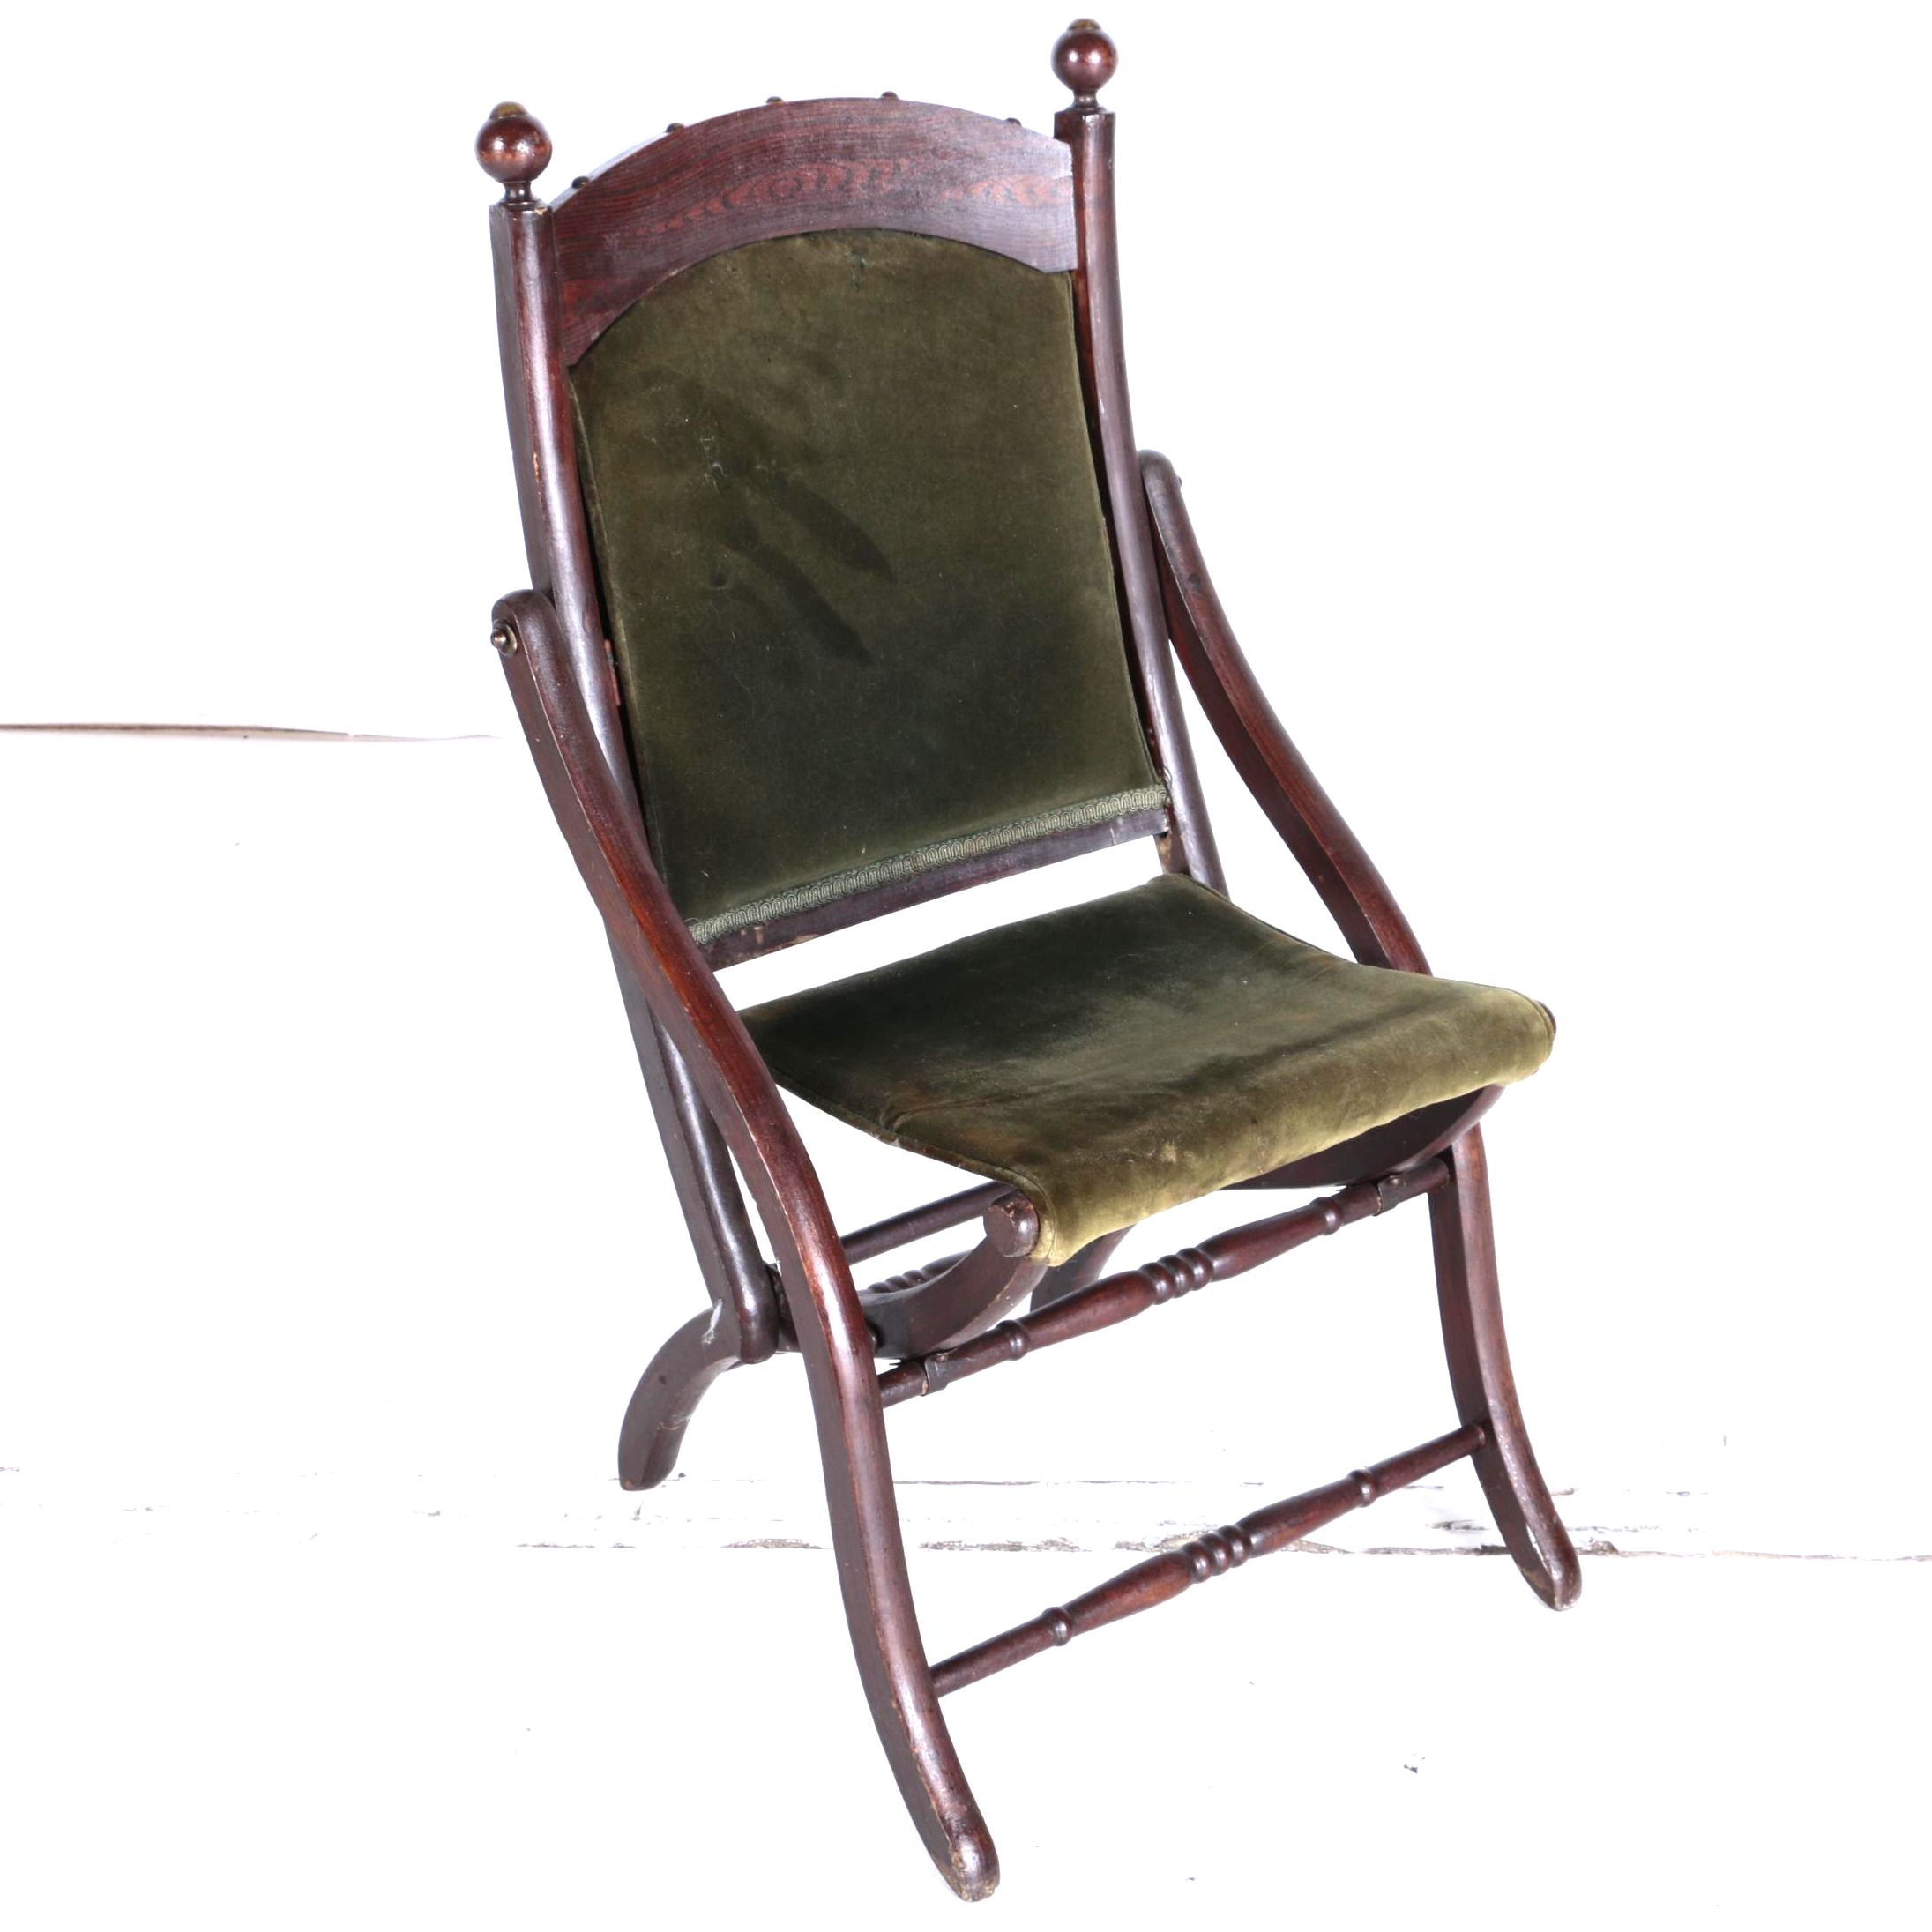 Vintage Victorian Style Folding Chair